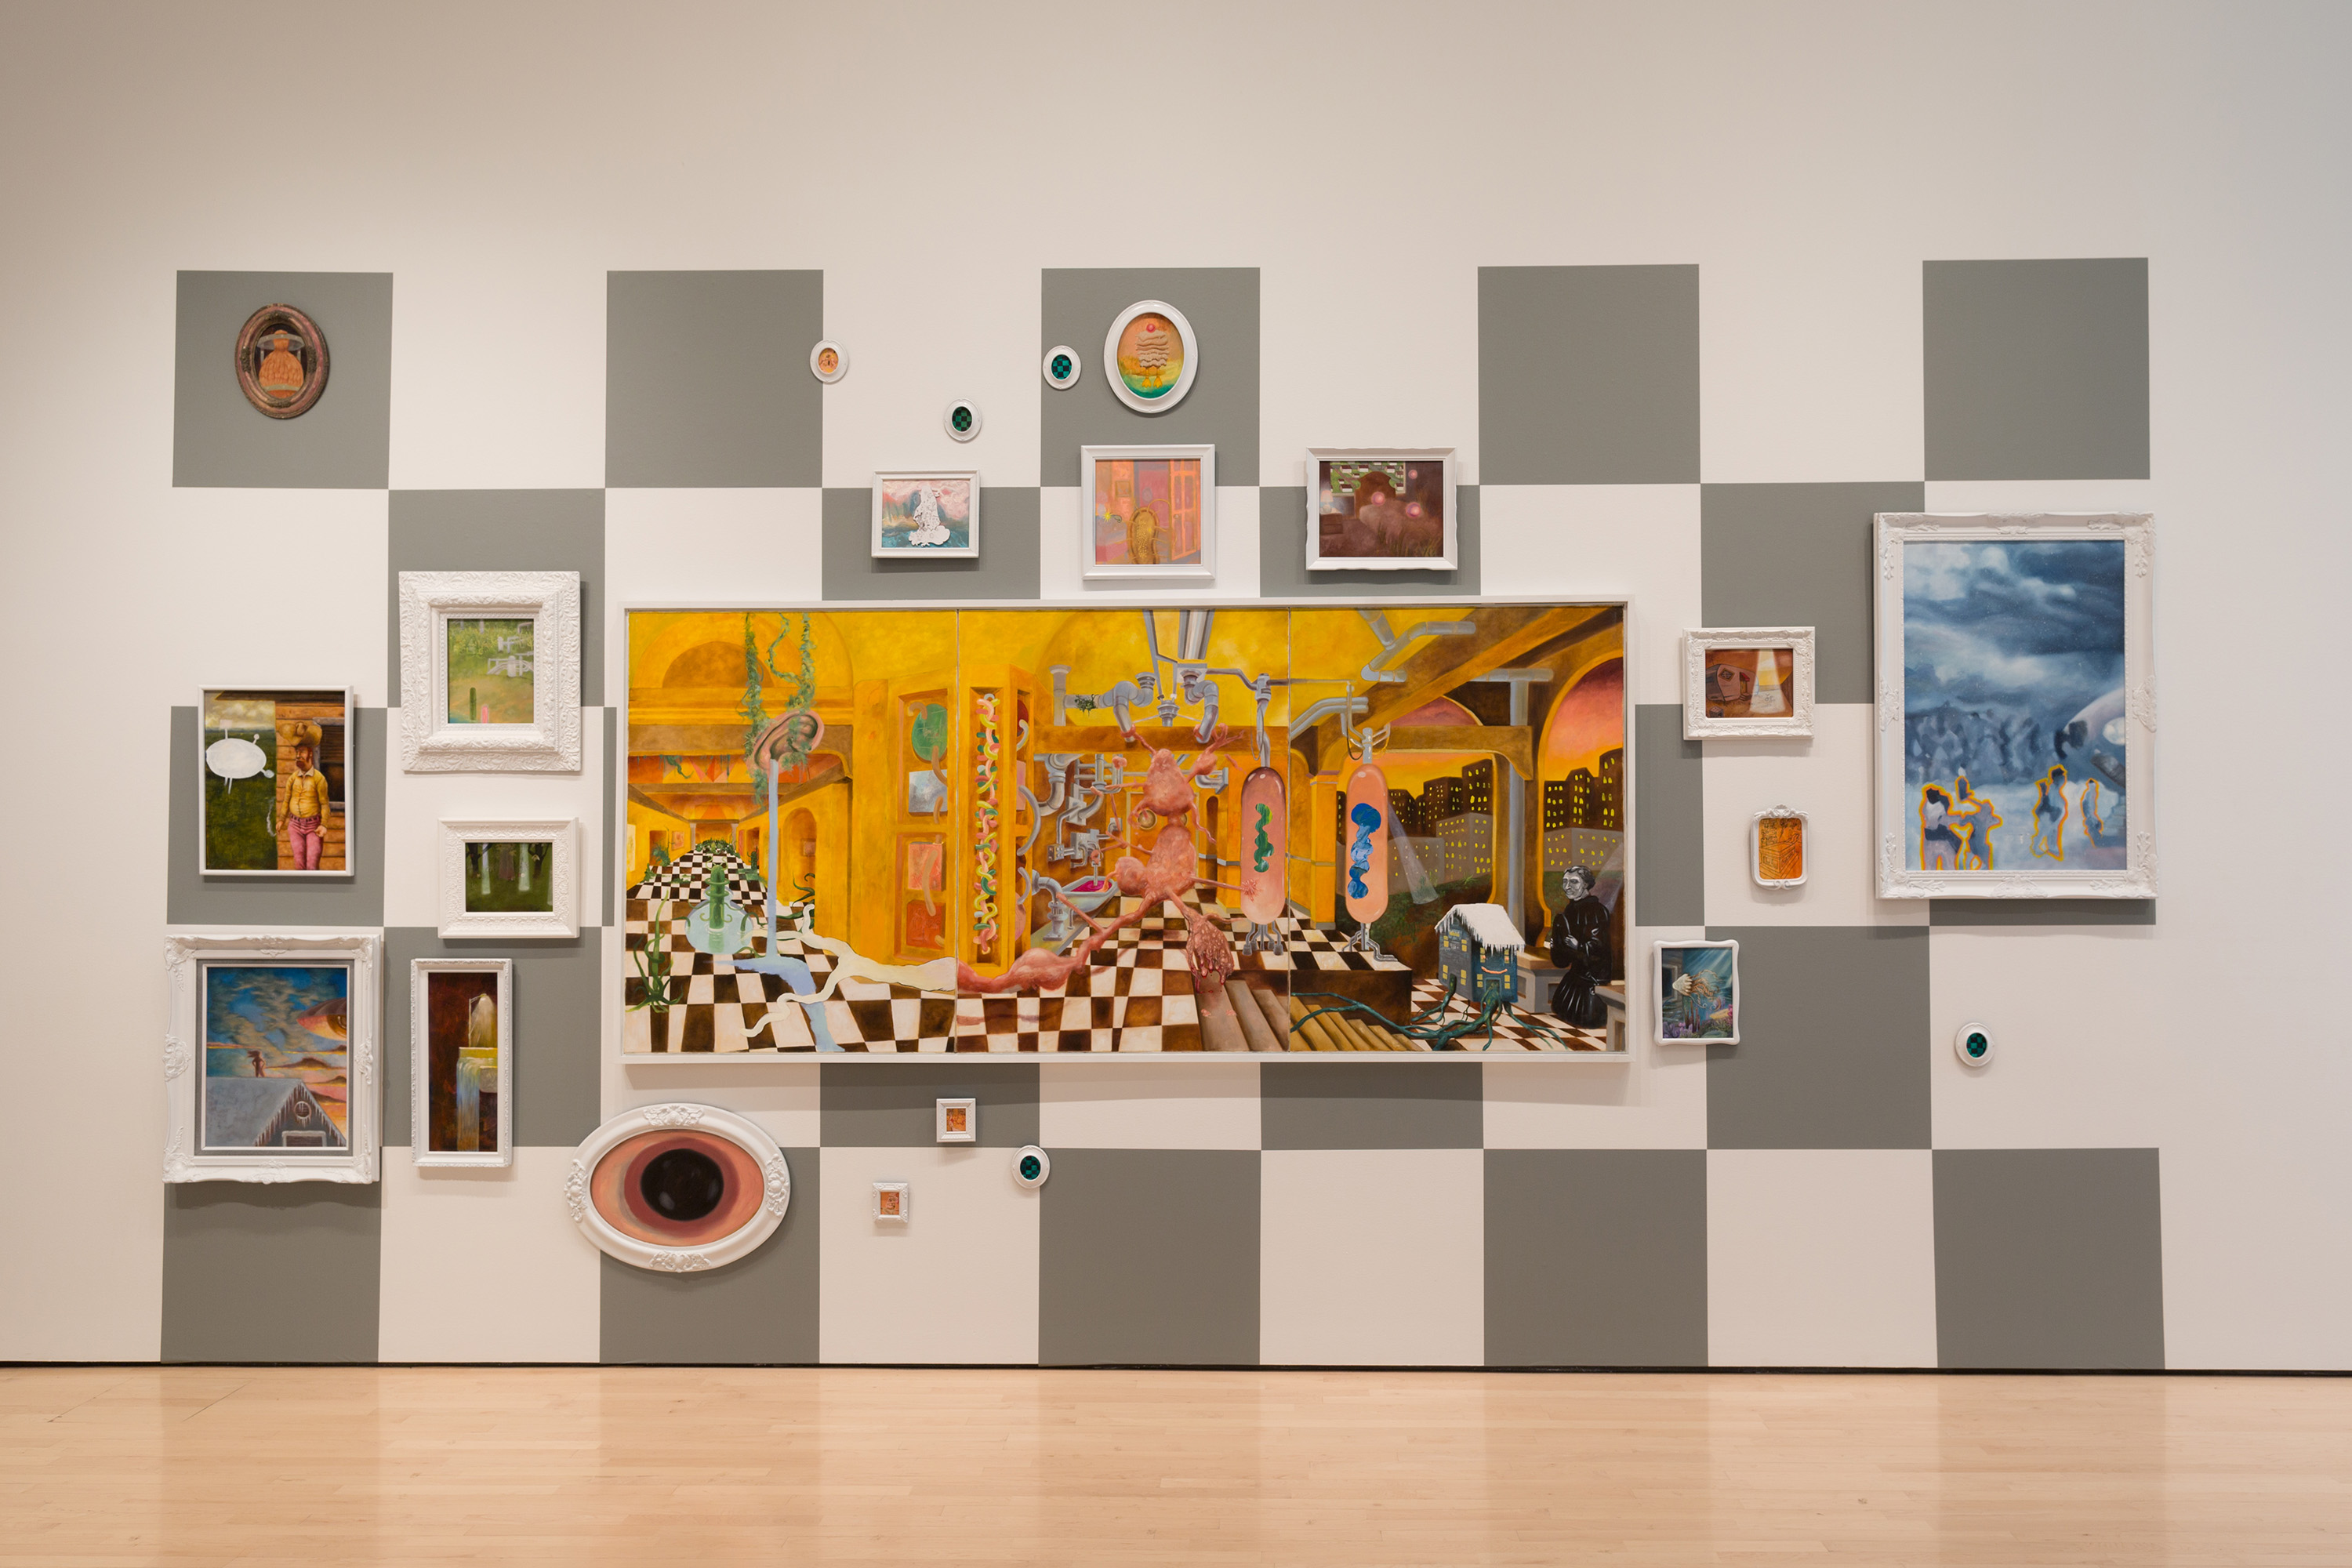 2016 Master of Fine Arts Exhibition, installation view at the Eli and Edythe Broad Art Museum at Michigan State University, 2016. Photo: MSU Broad